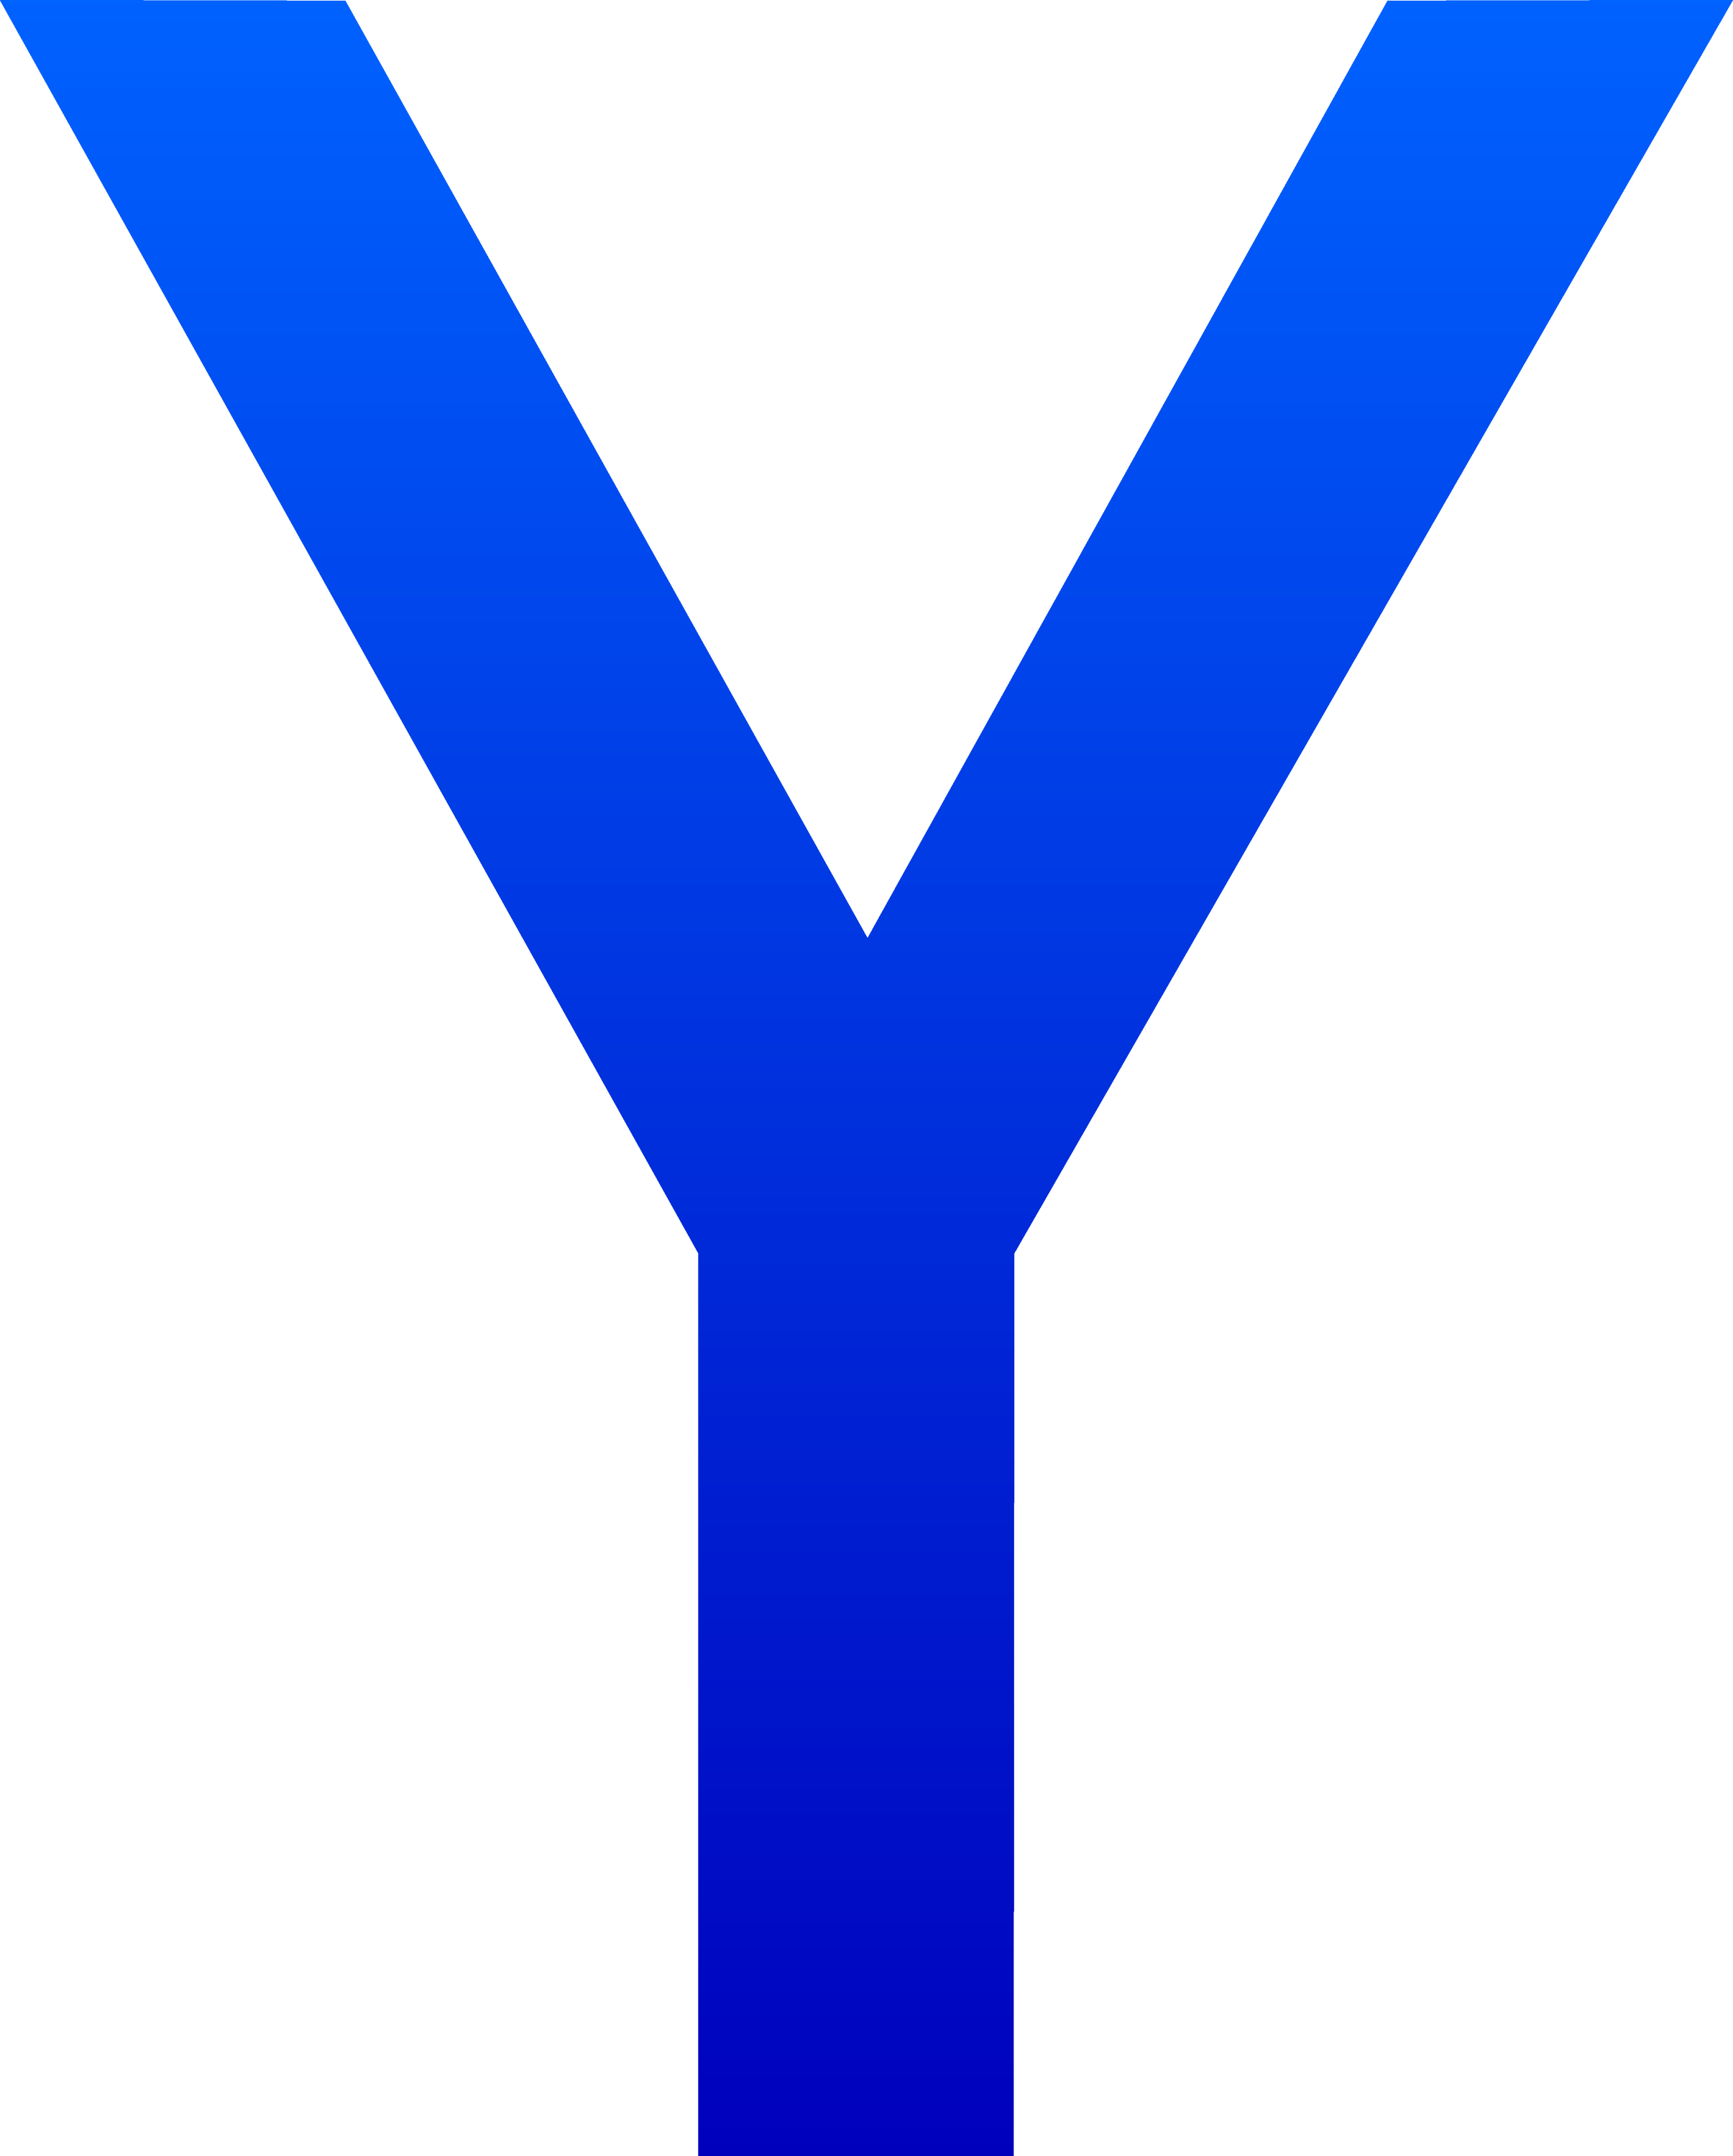 The Letter Y Free Clip Art